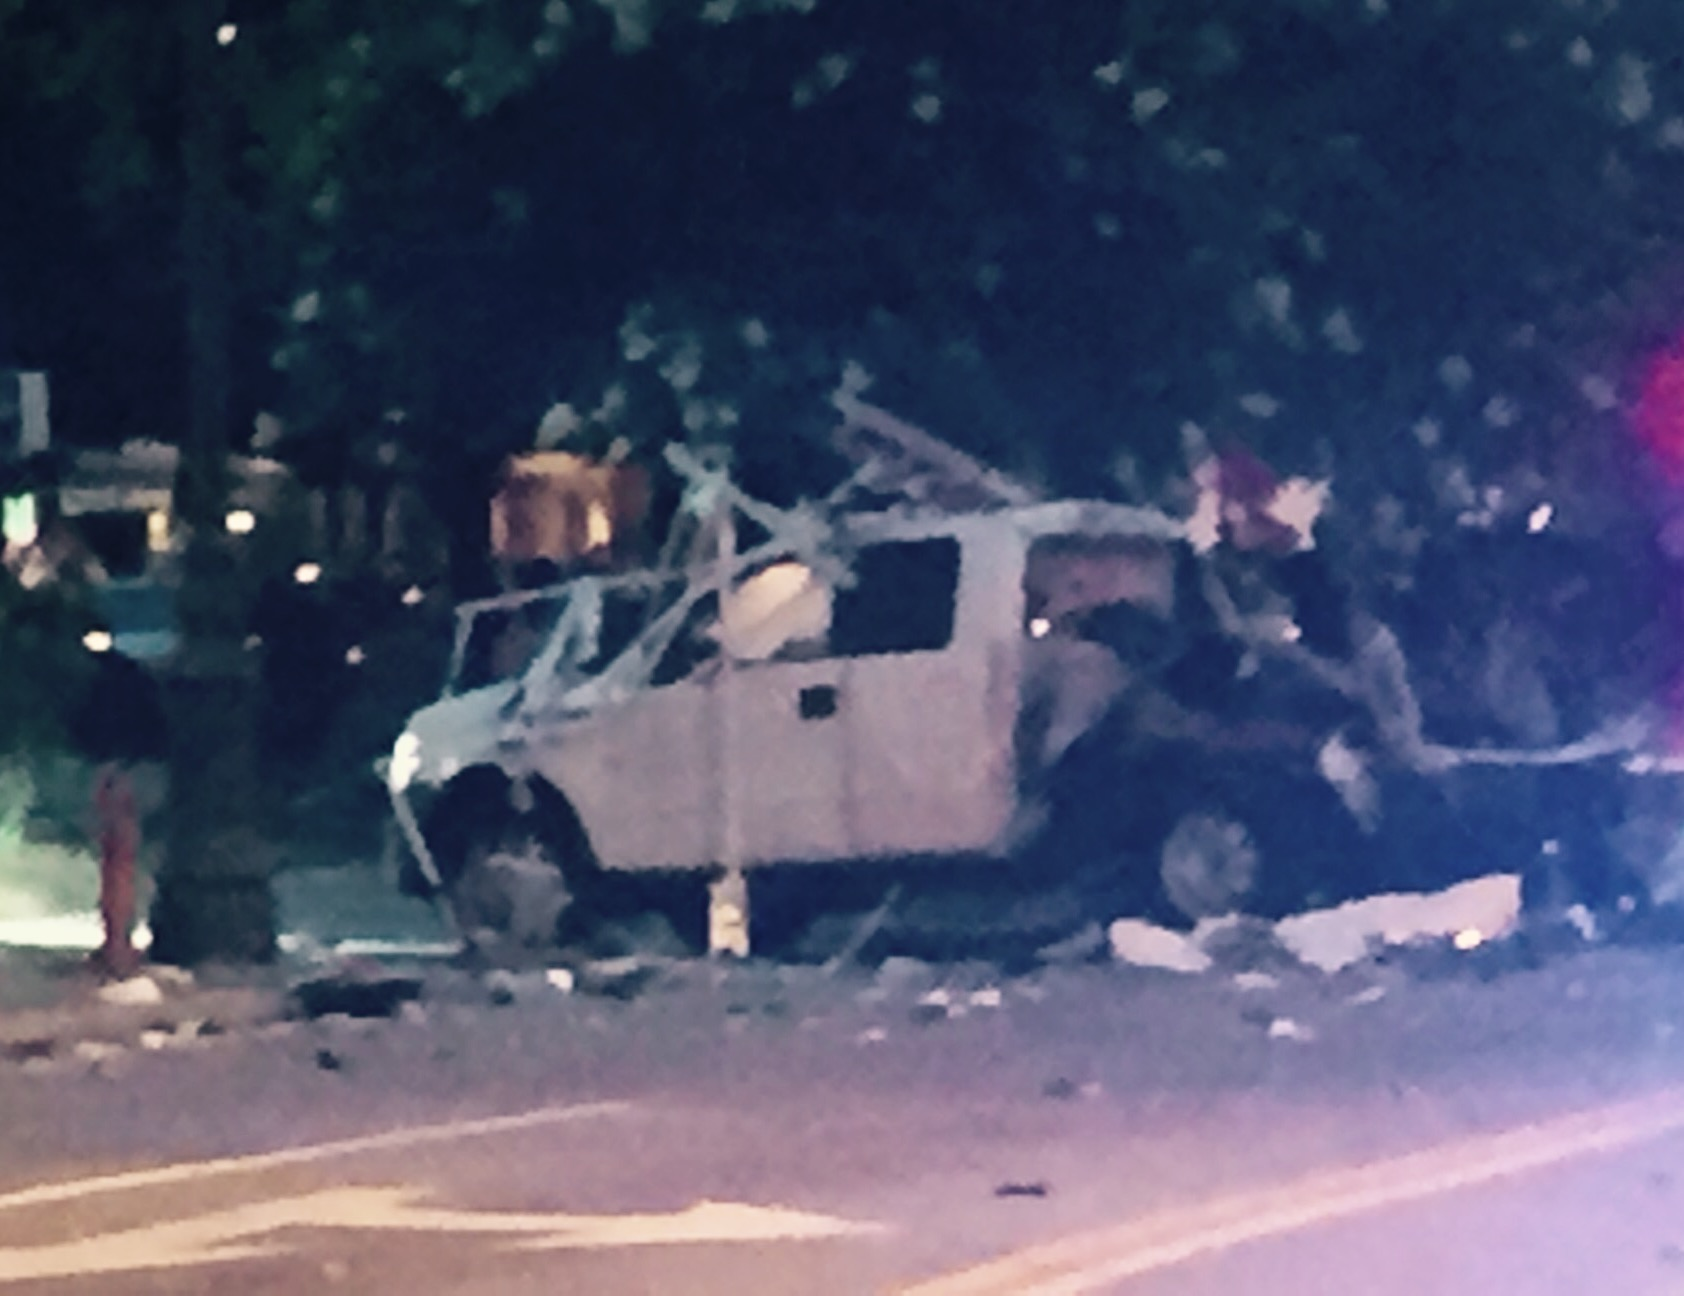 Truck Explosion in Franklin Square_17066